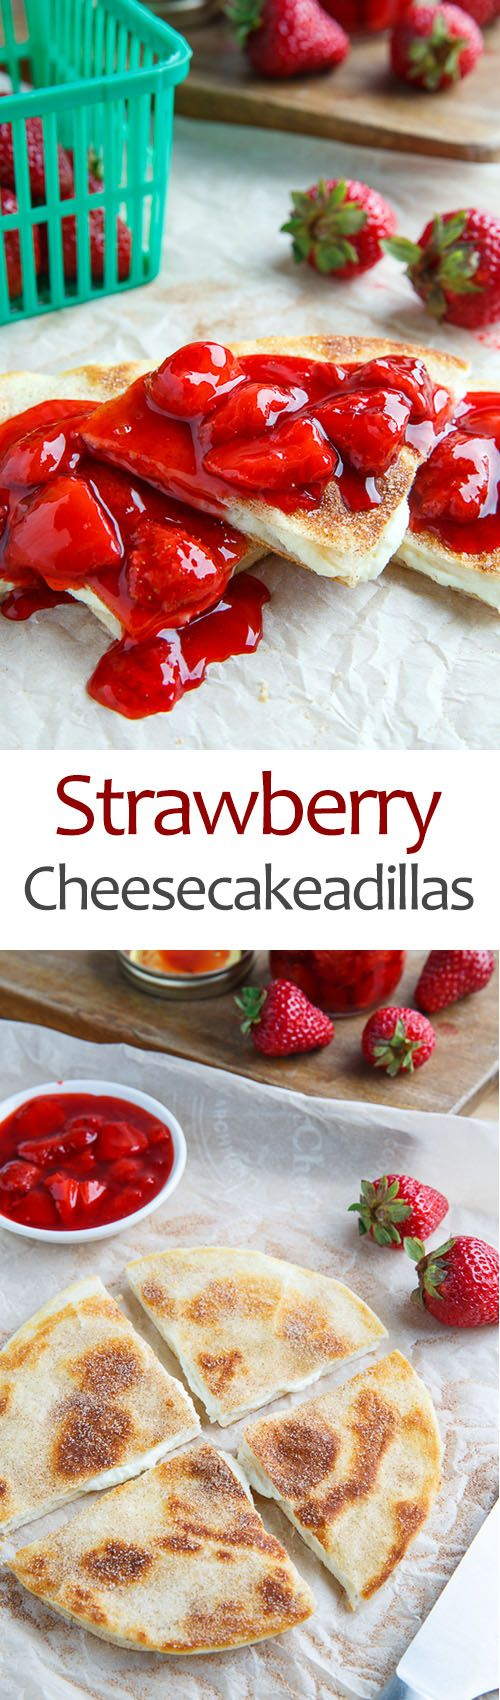 Strawberry Cheesecakeadillas                                                                                                                                                                                 More